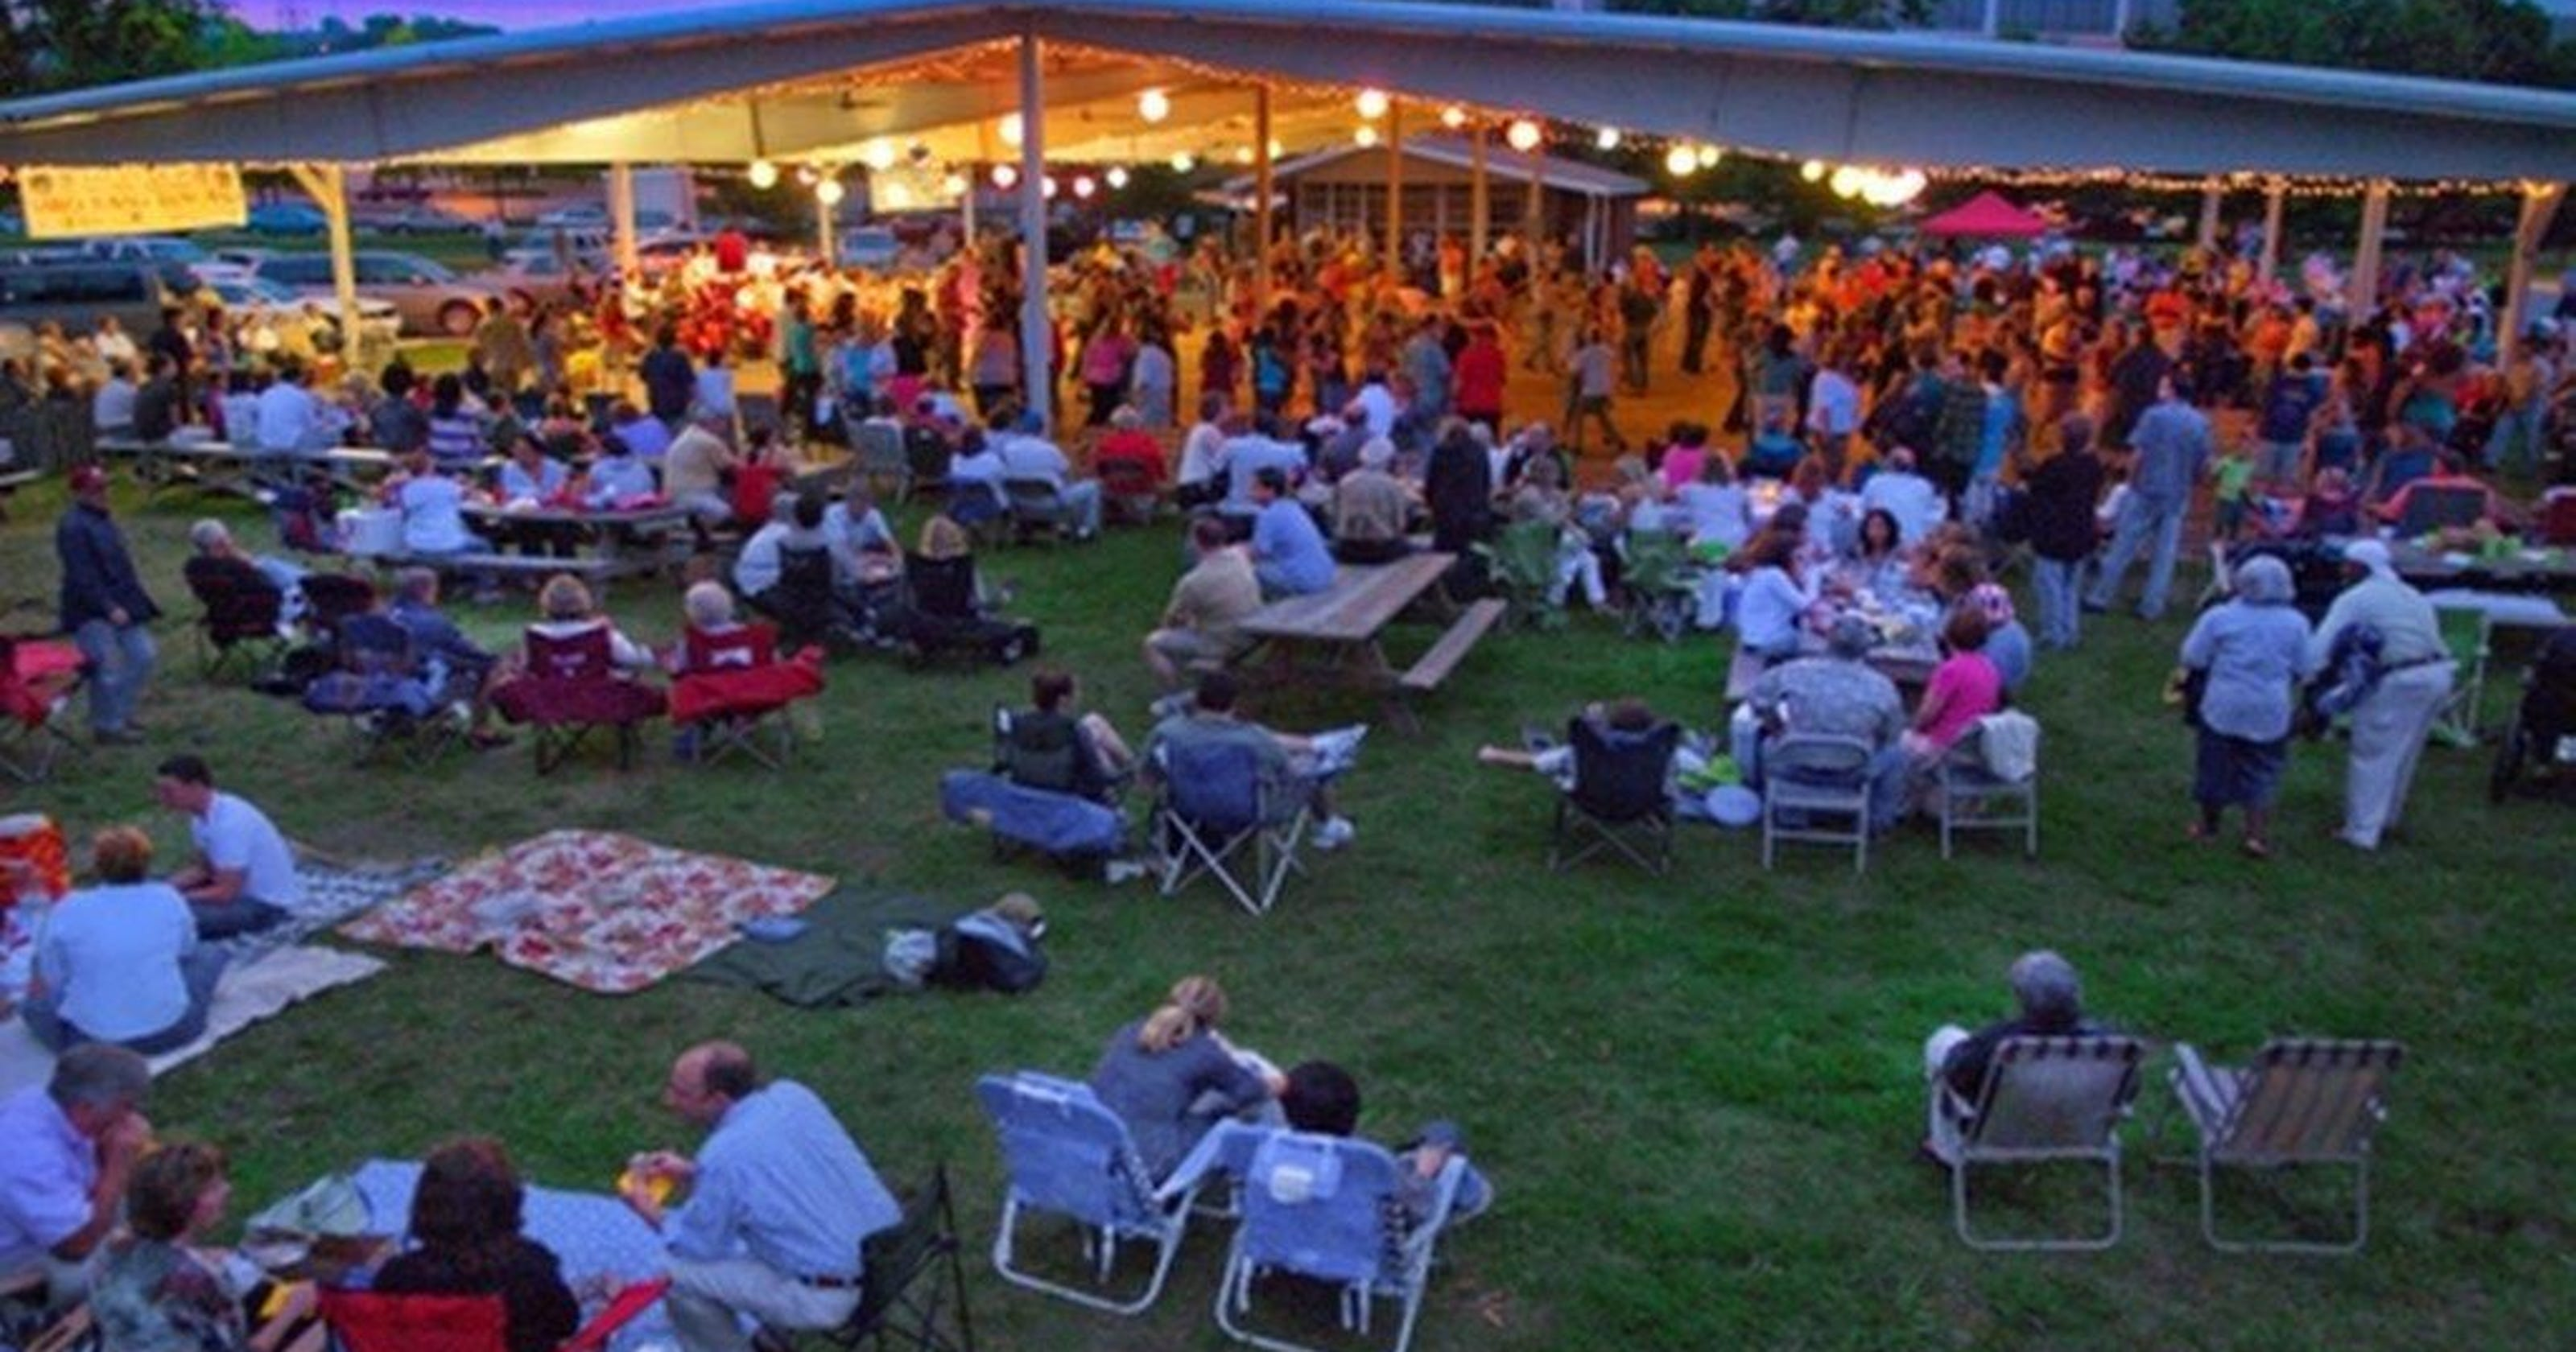 Free things to do in Nashville for Labor Day weekend